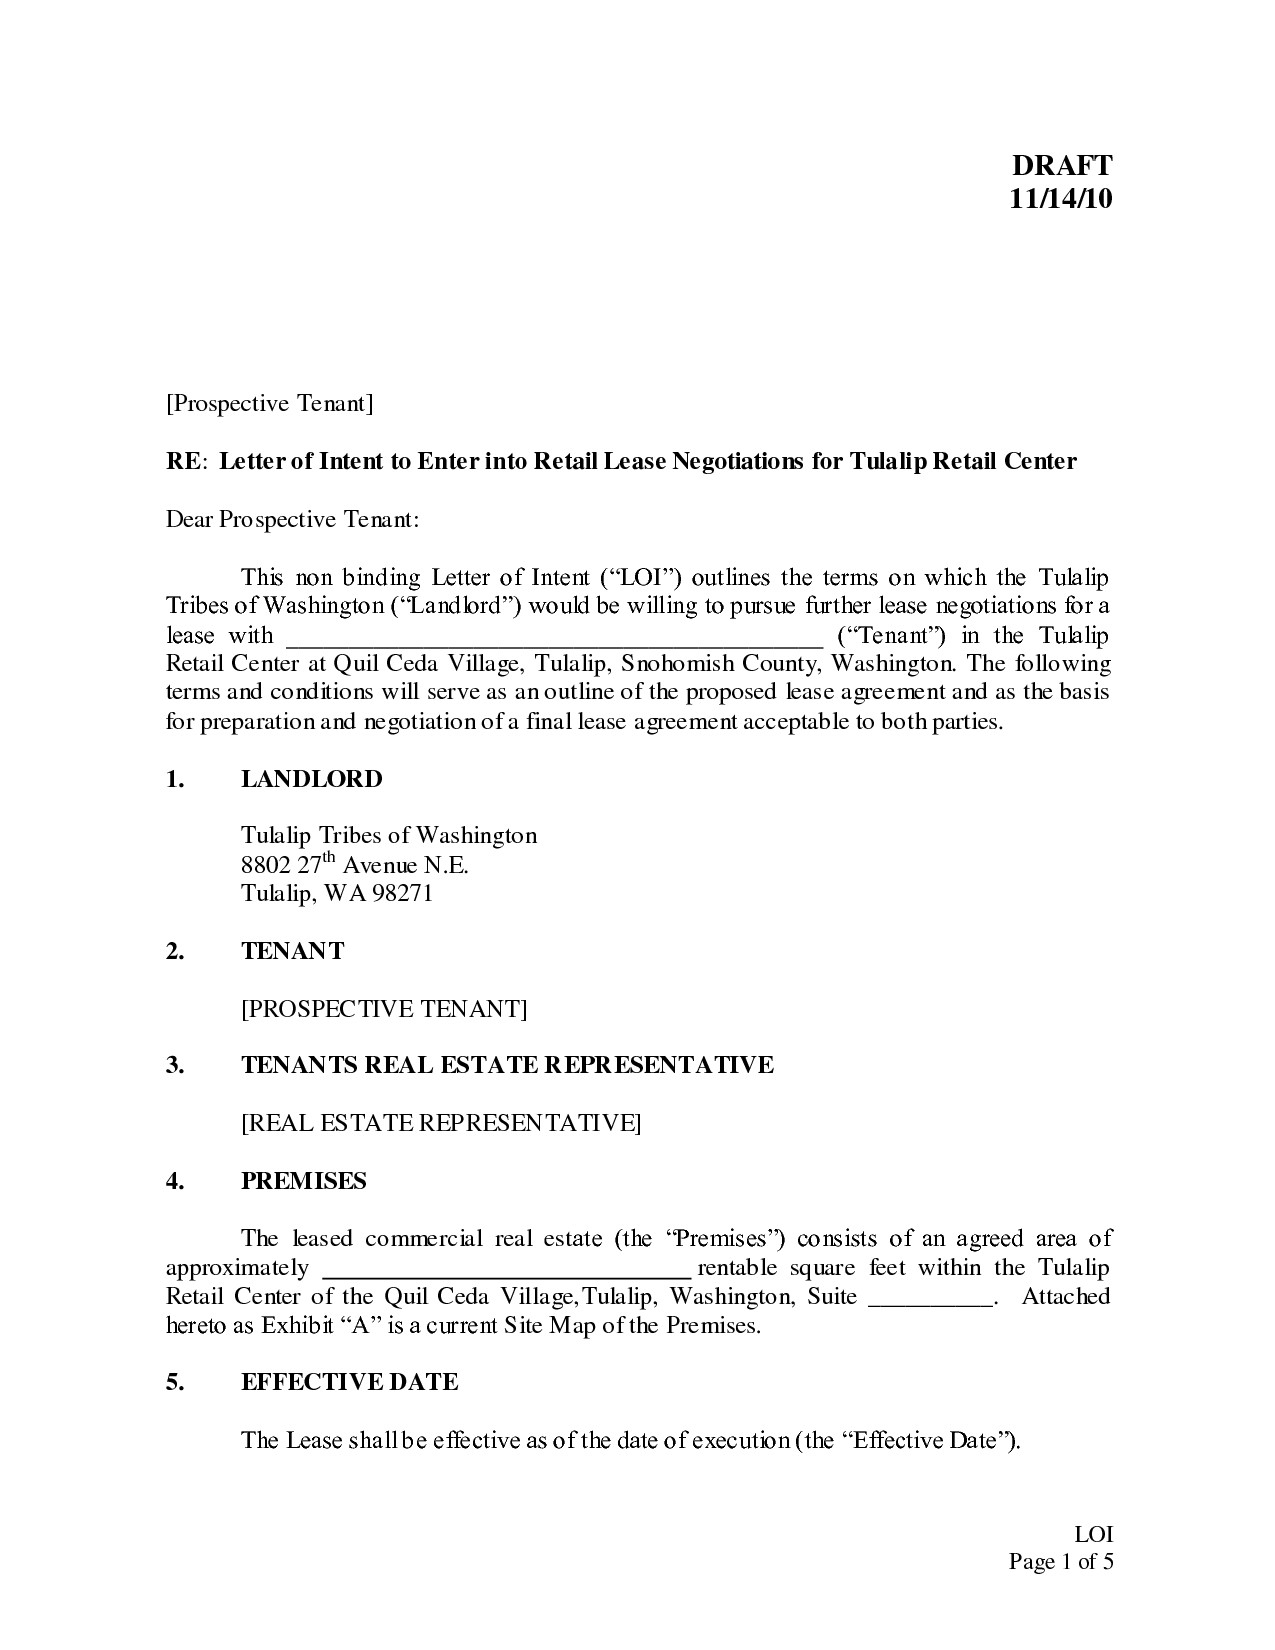 Business Letter Template Word | Real Estate Letter Of Intent Template Free Examples Letter